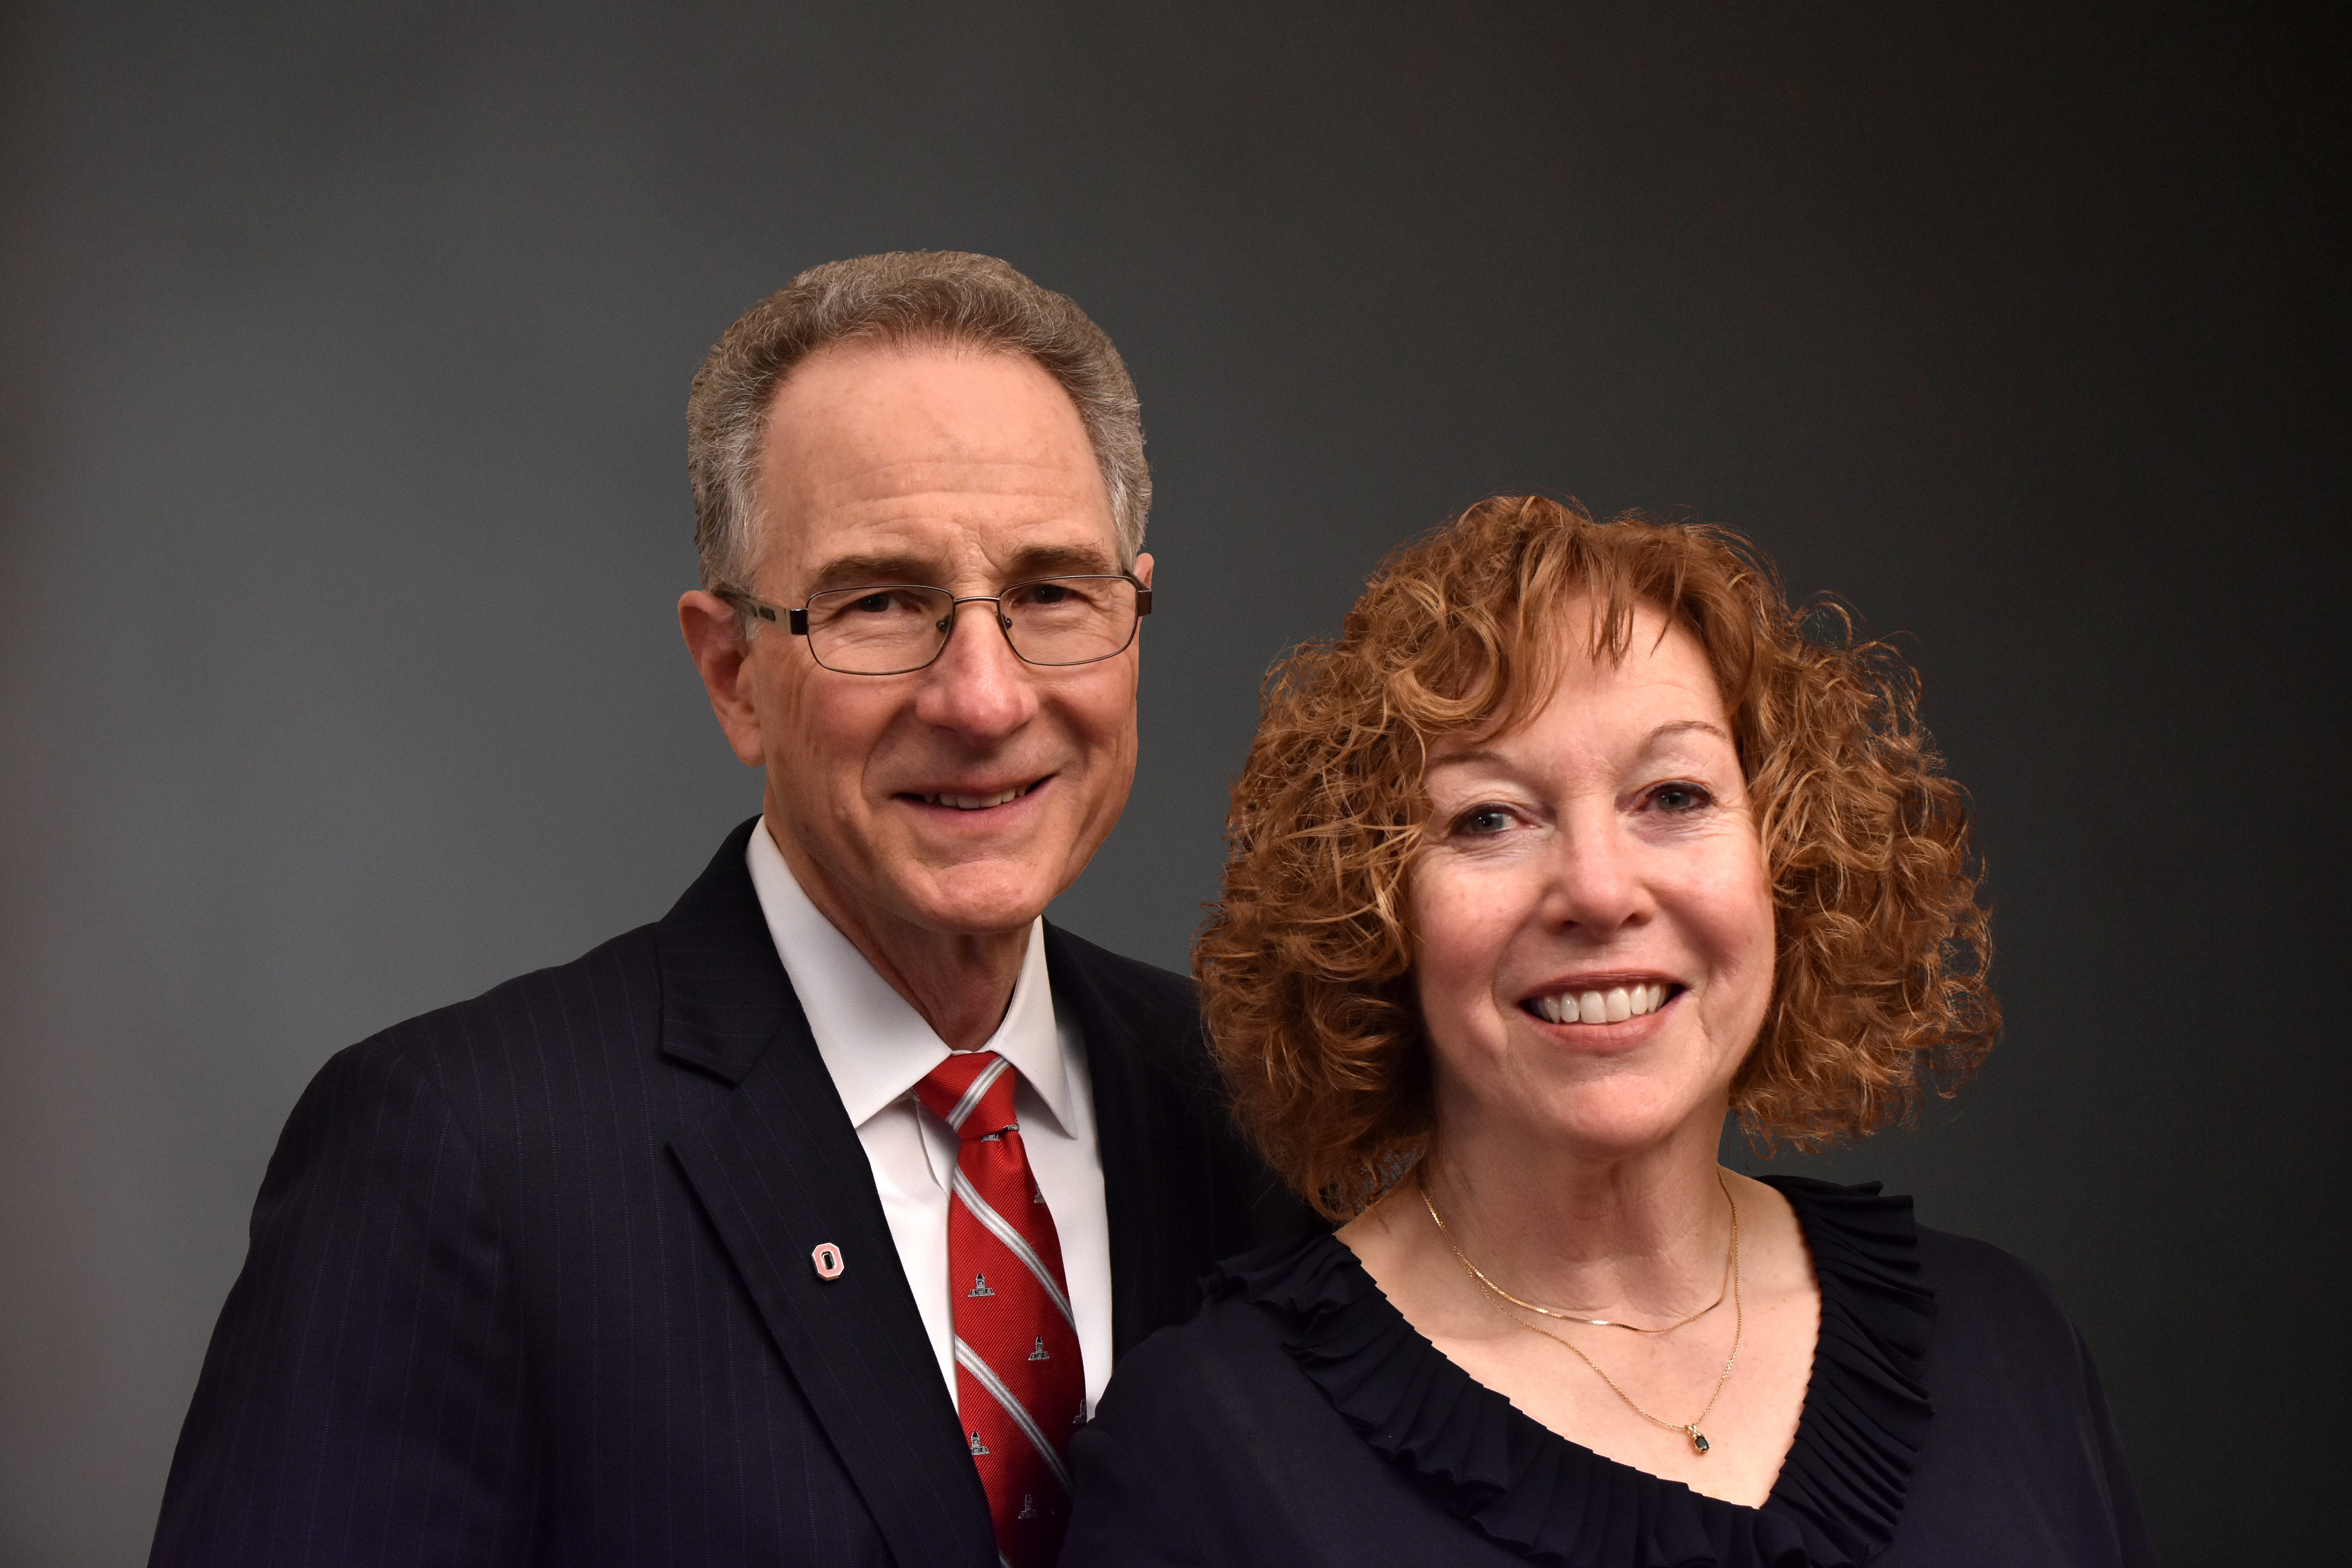 Keith L. and Kathleen C. Smith